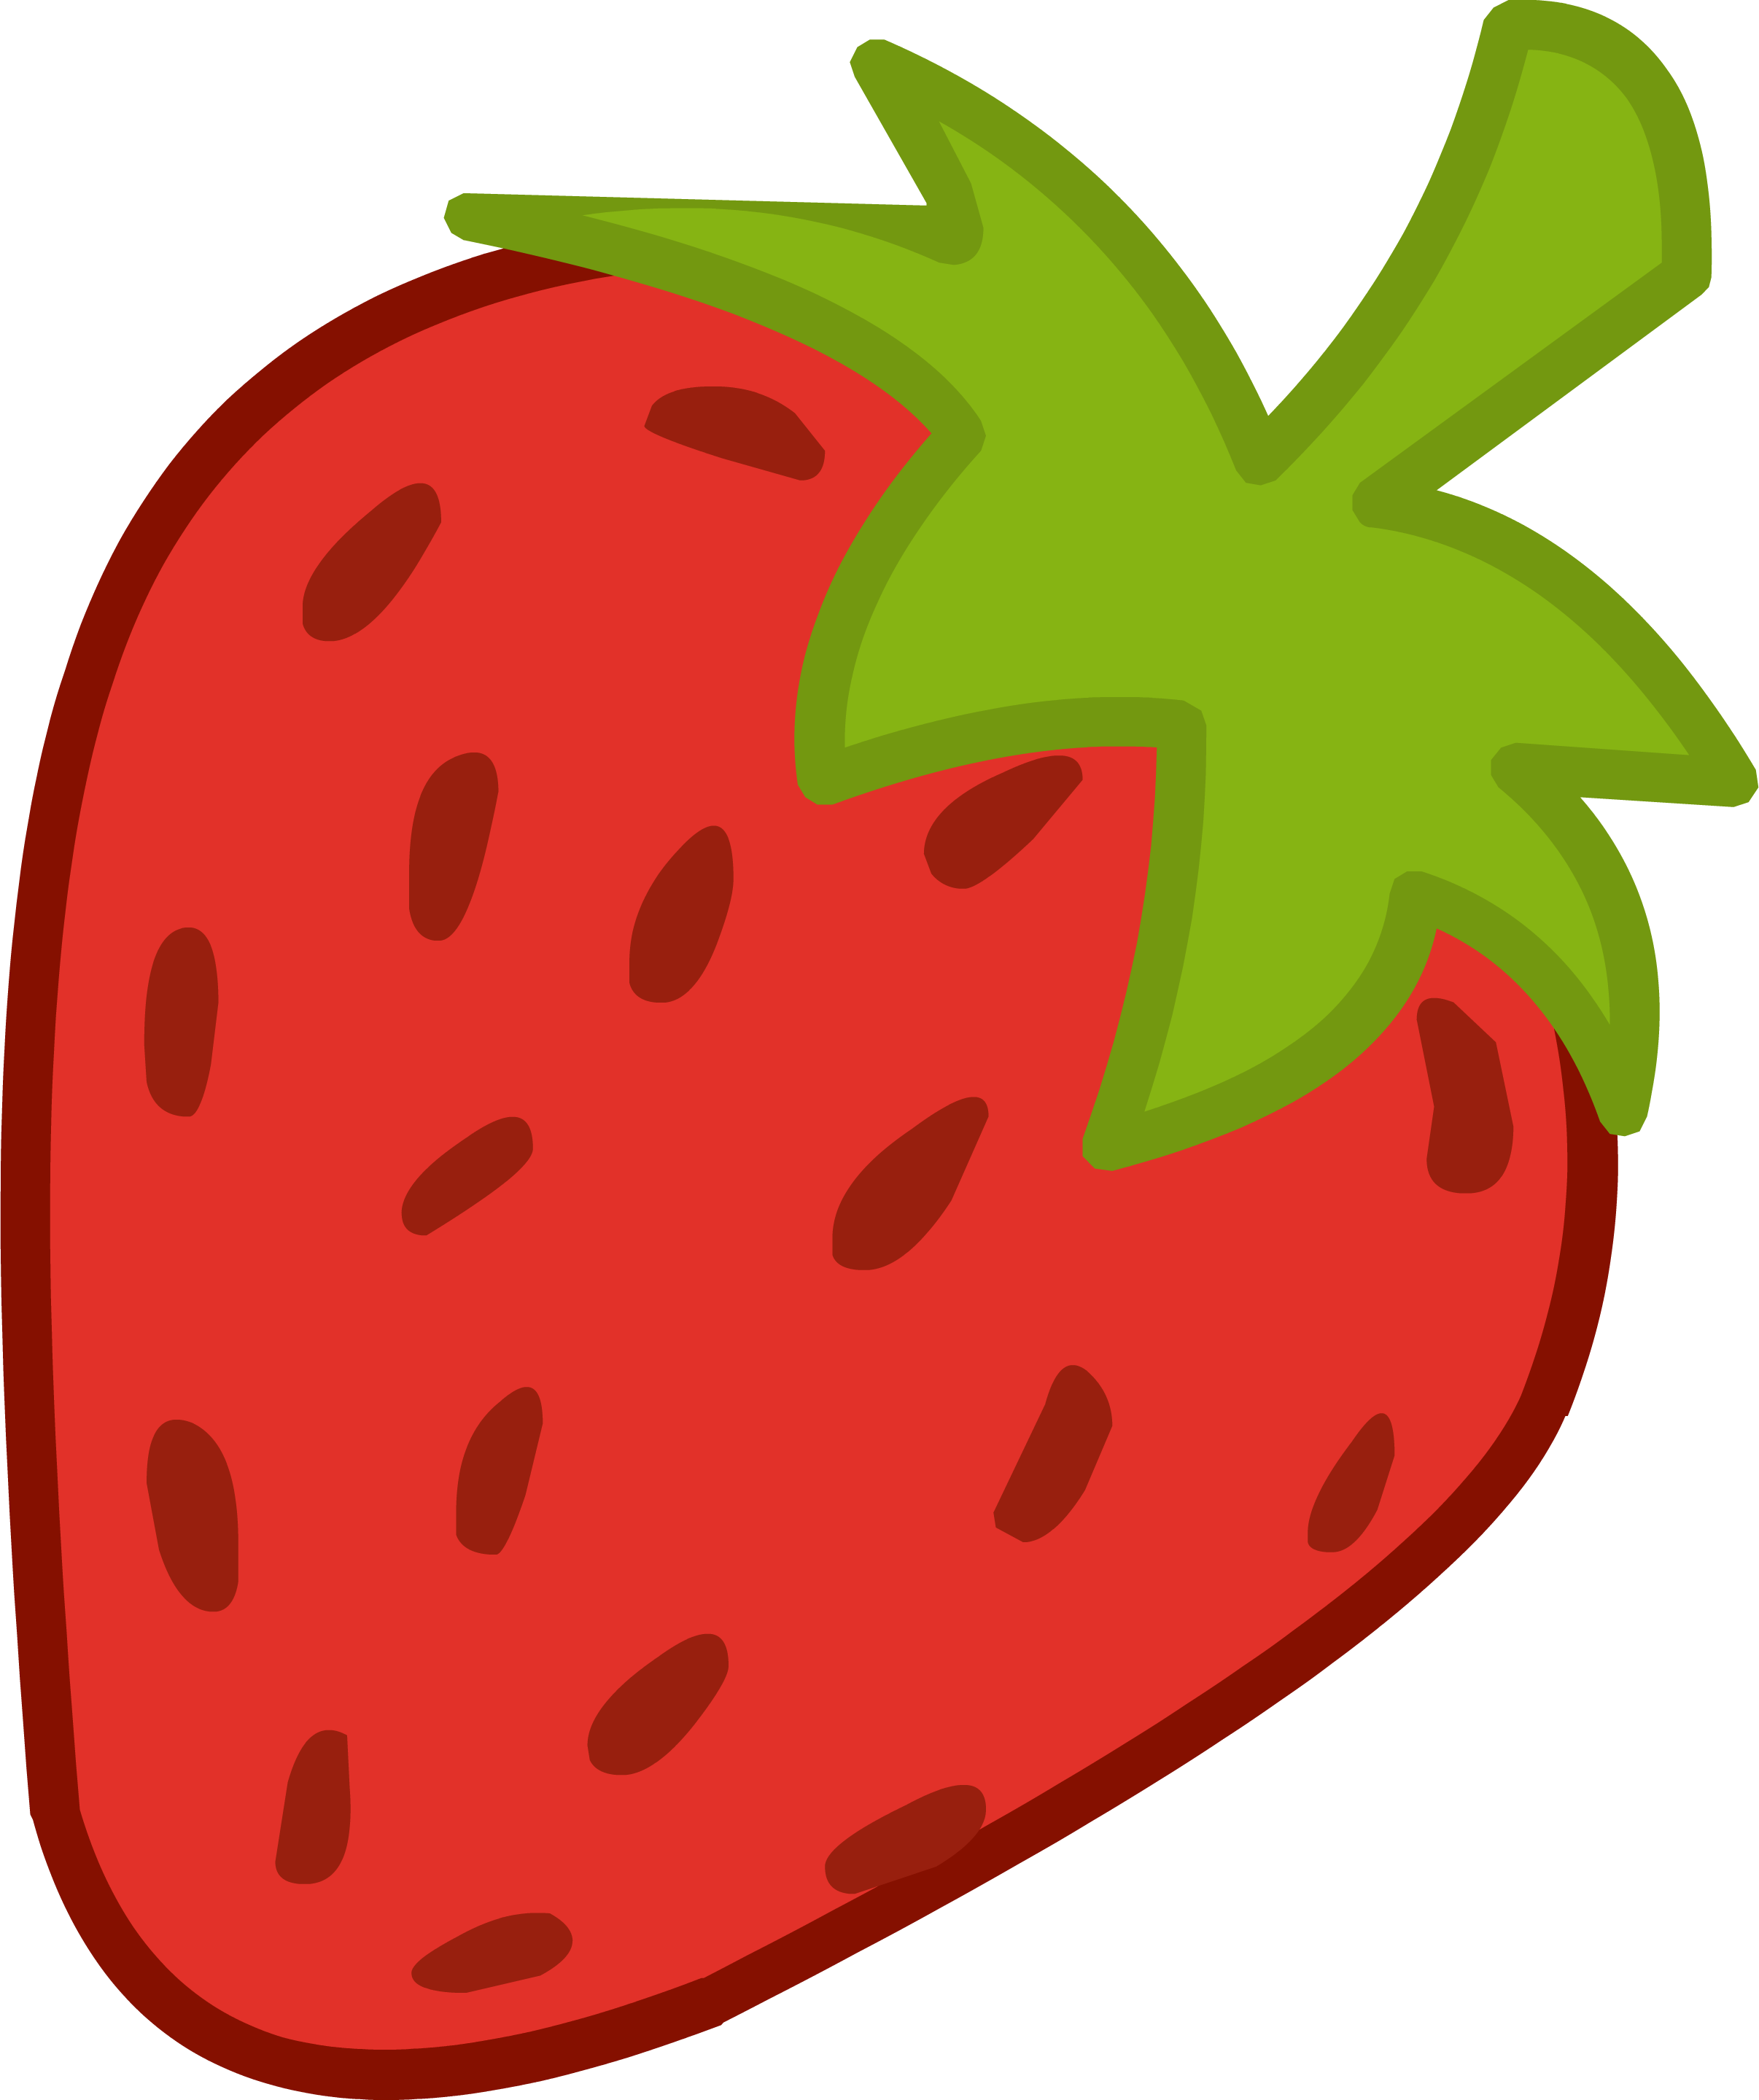 Cartoon strawberry clipart